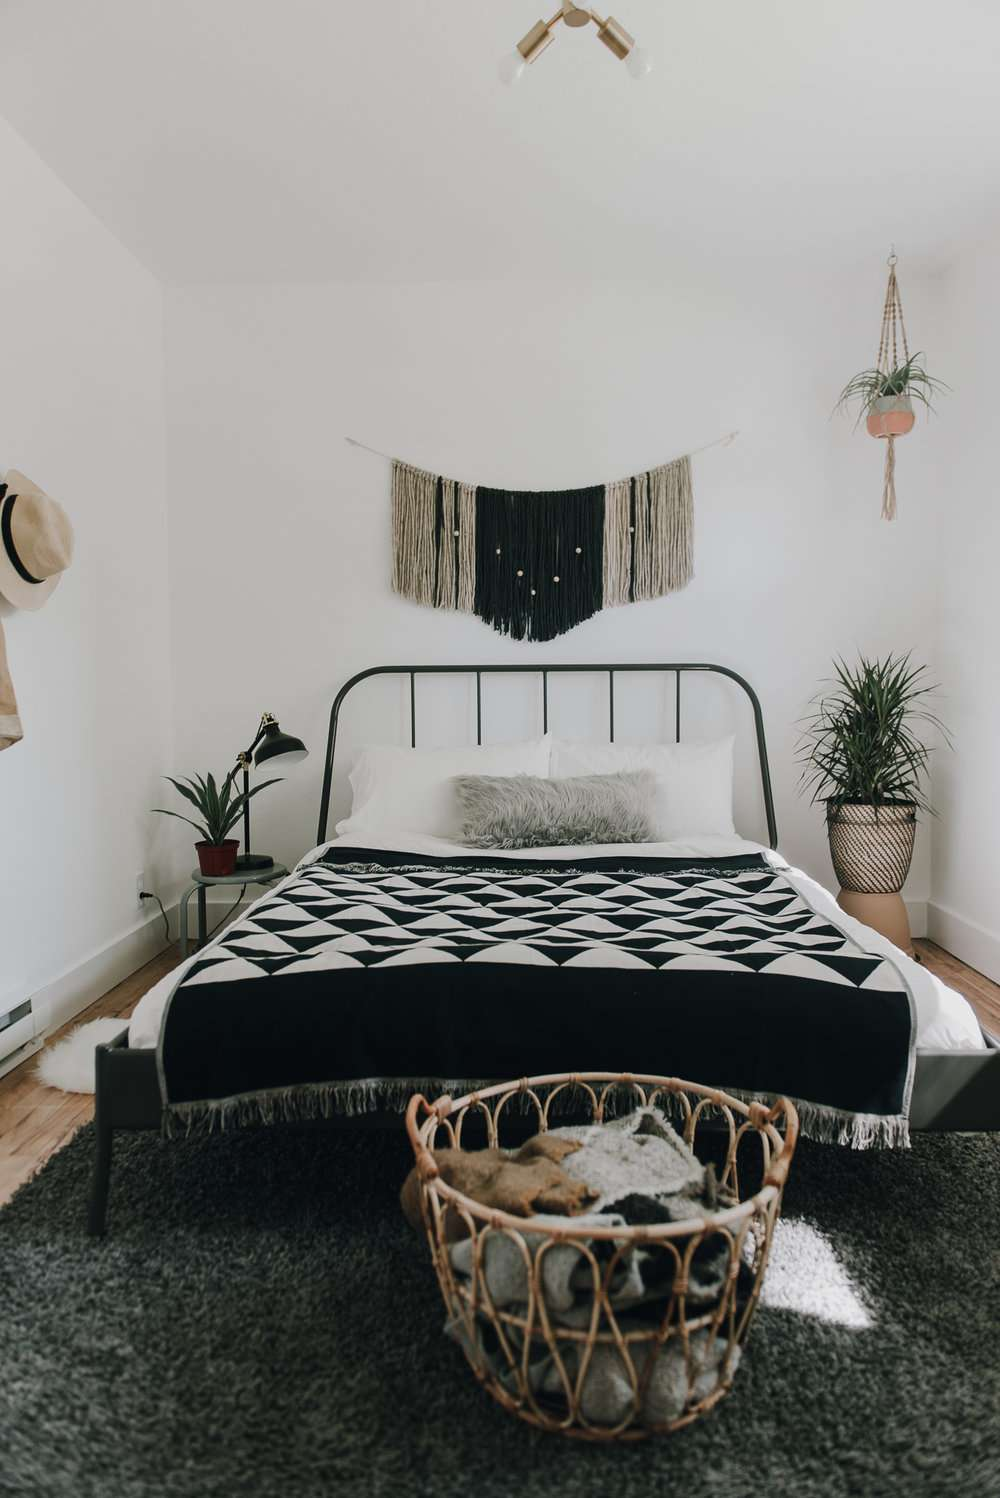 Bed with macrame